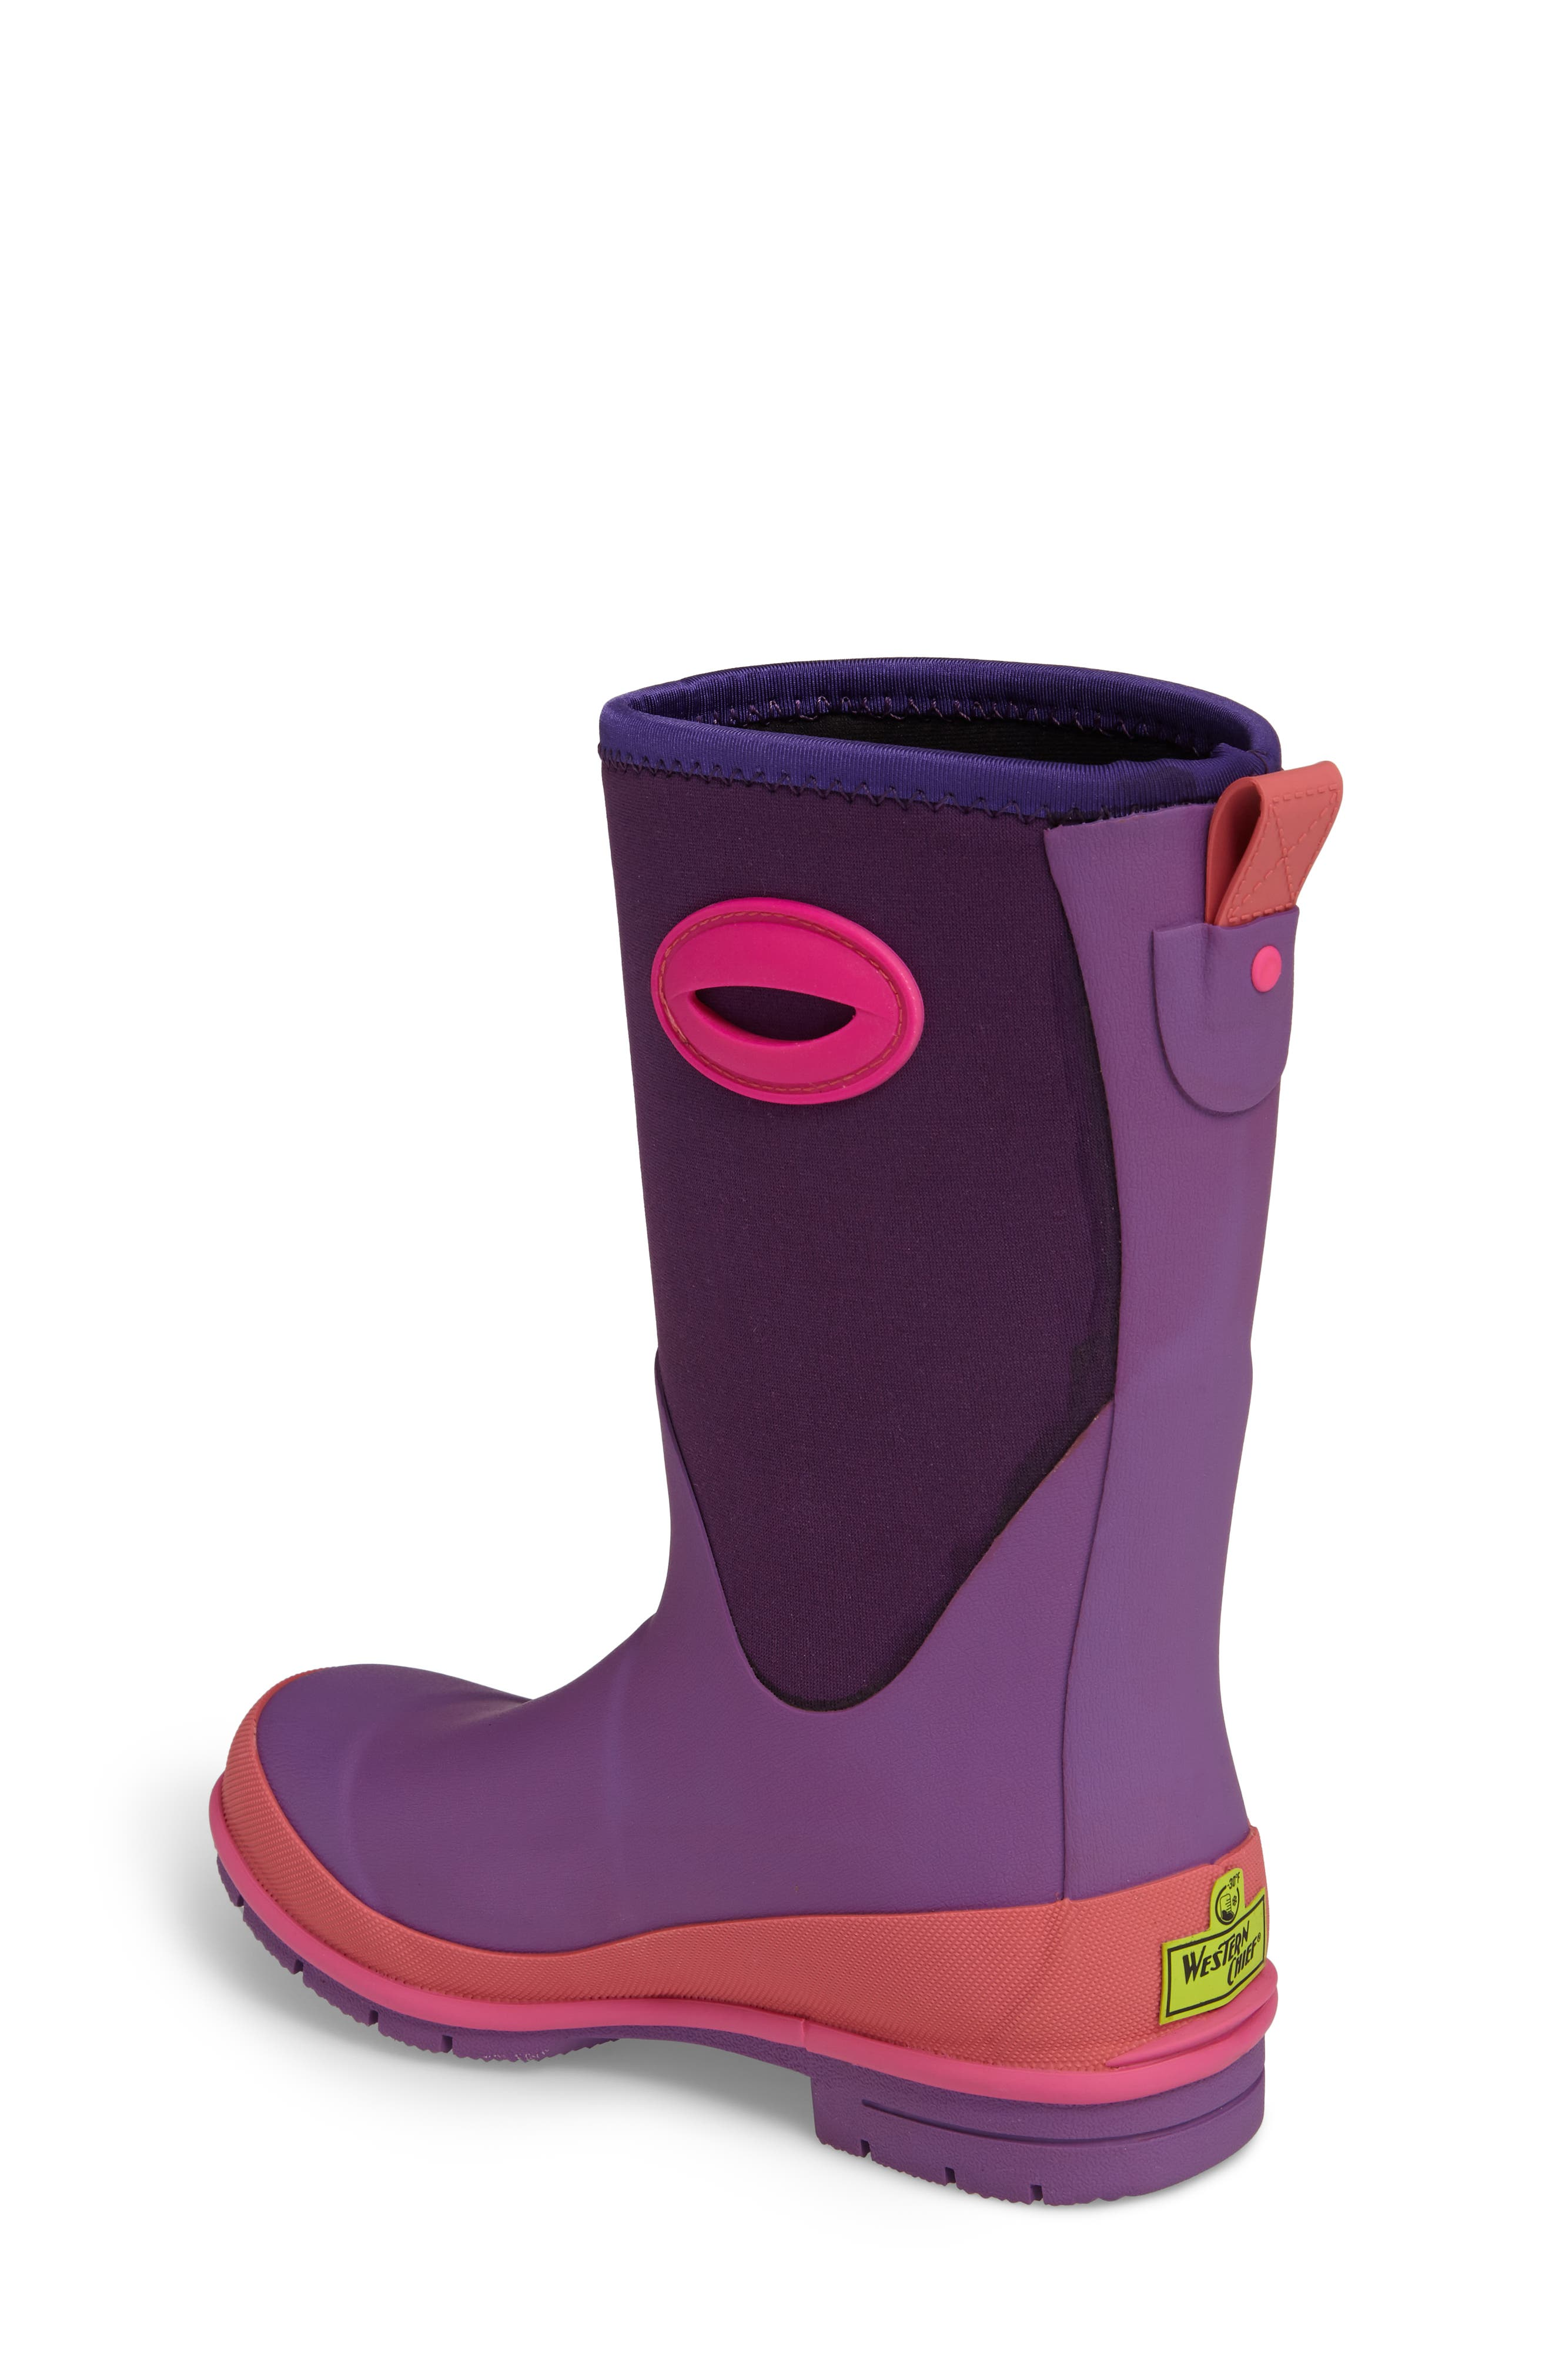 Neoprene Purple Snow Boot,                             Alternate thumbnail 2, color,                             511